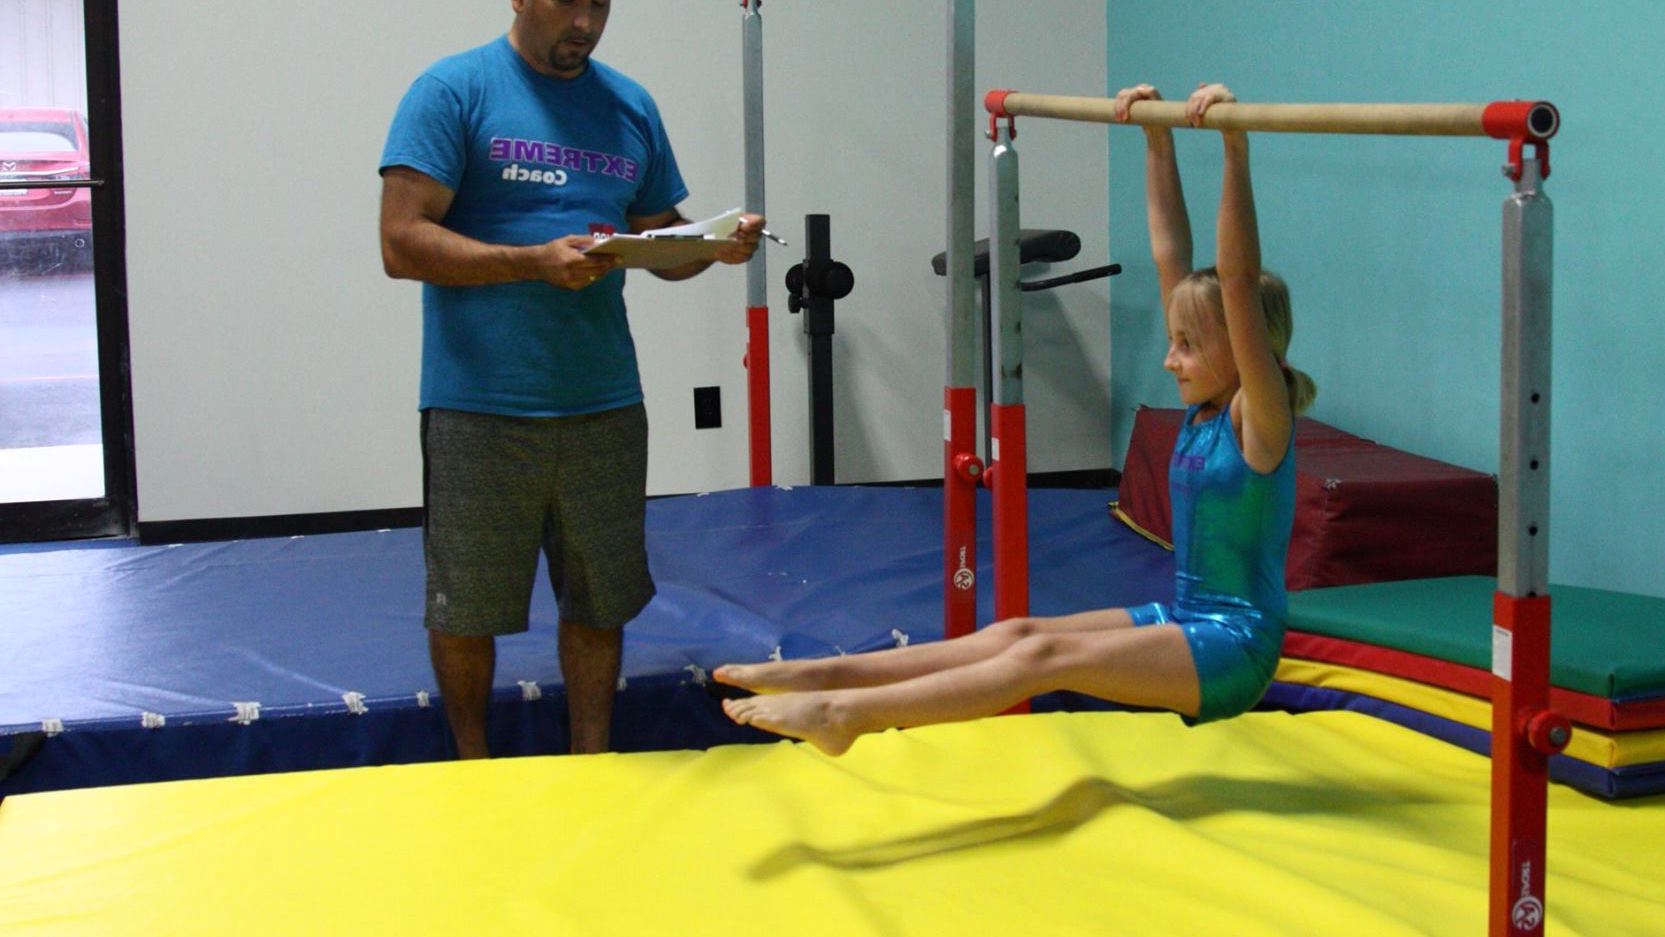 Extreme Gymnastics Classes in New Braunfels